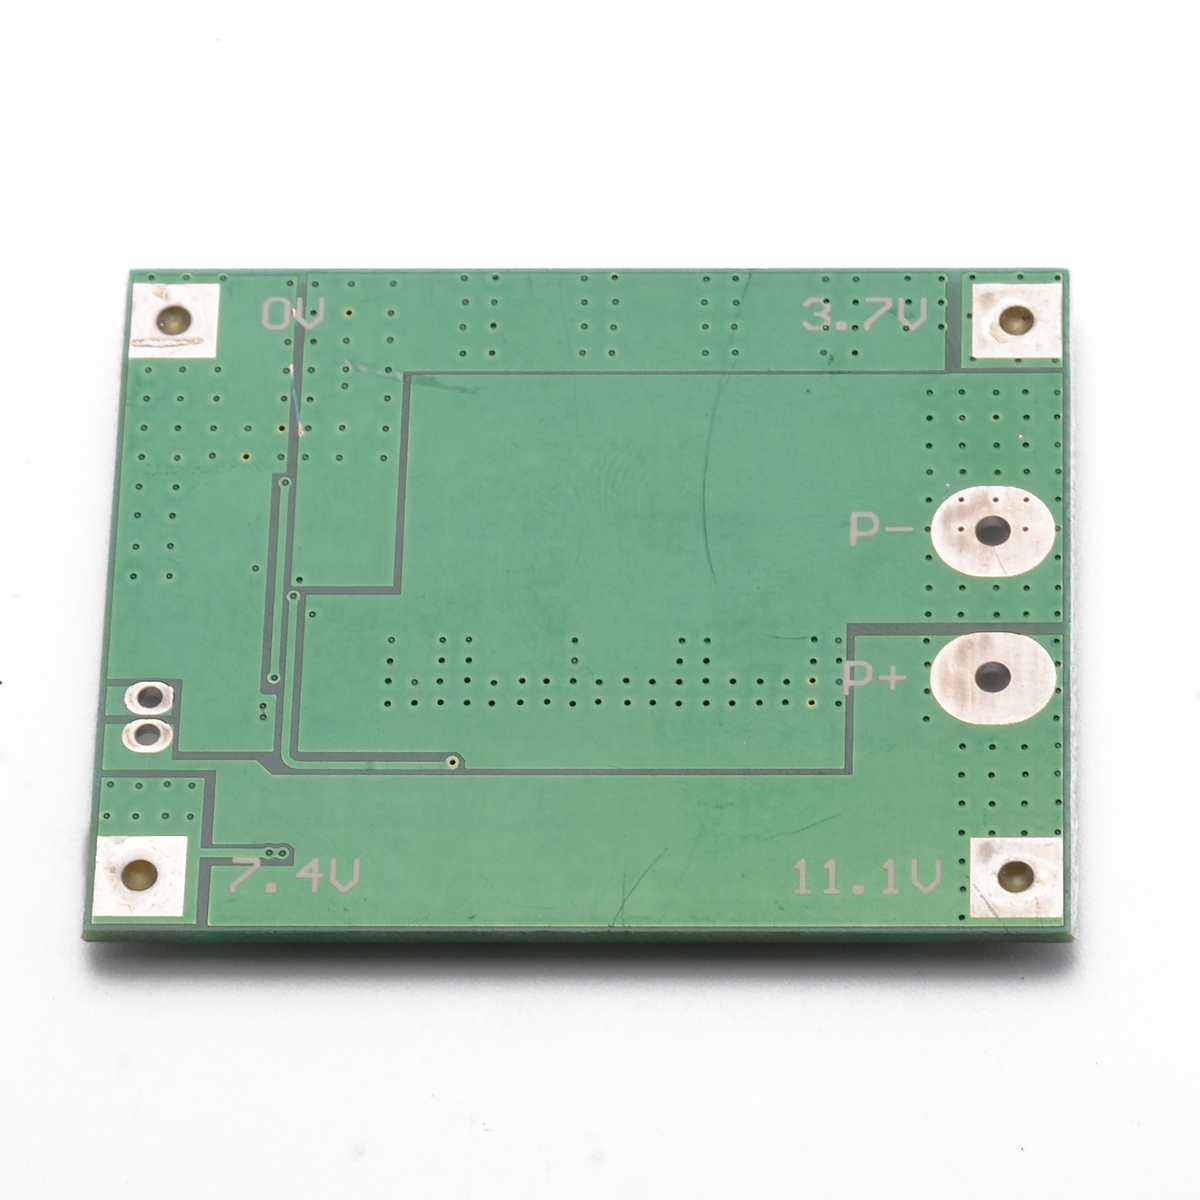 12.6V-13.6V Voltage Protection Board Electrical 3S 40A Li-ion Lithium Battery Charger Module BMS Protective Charging Board